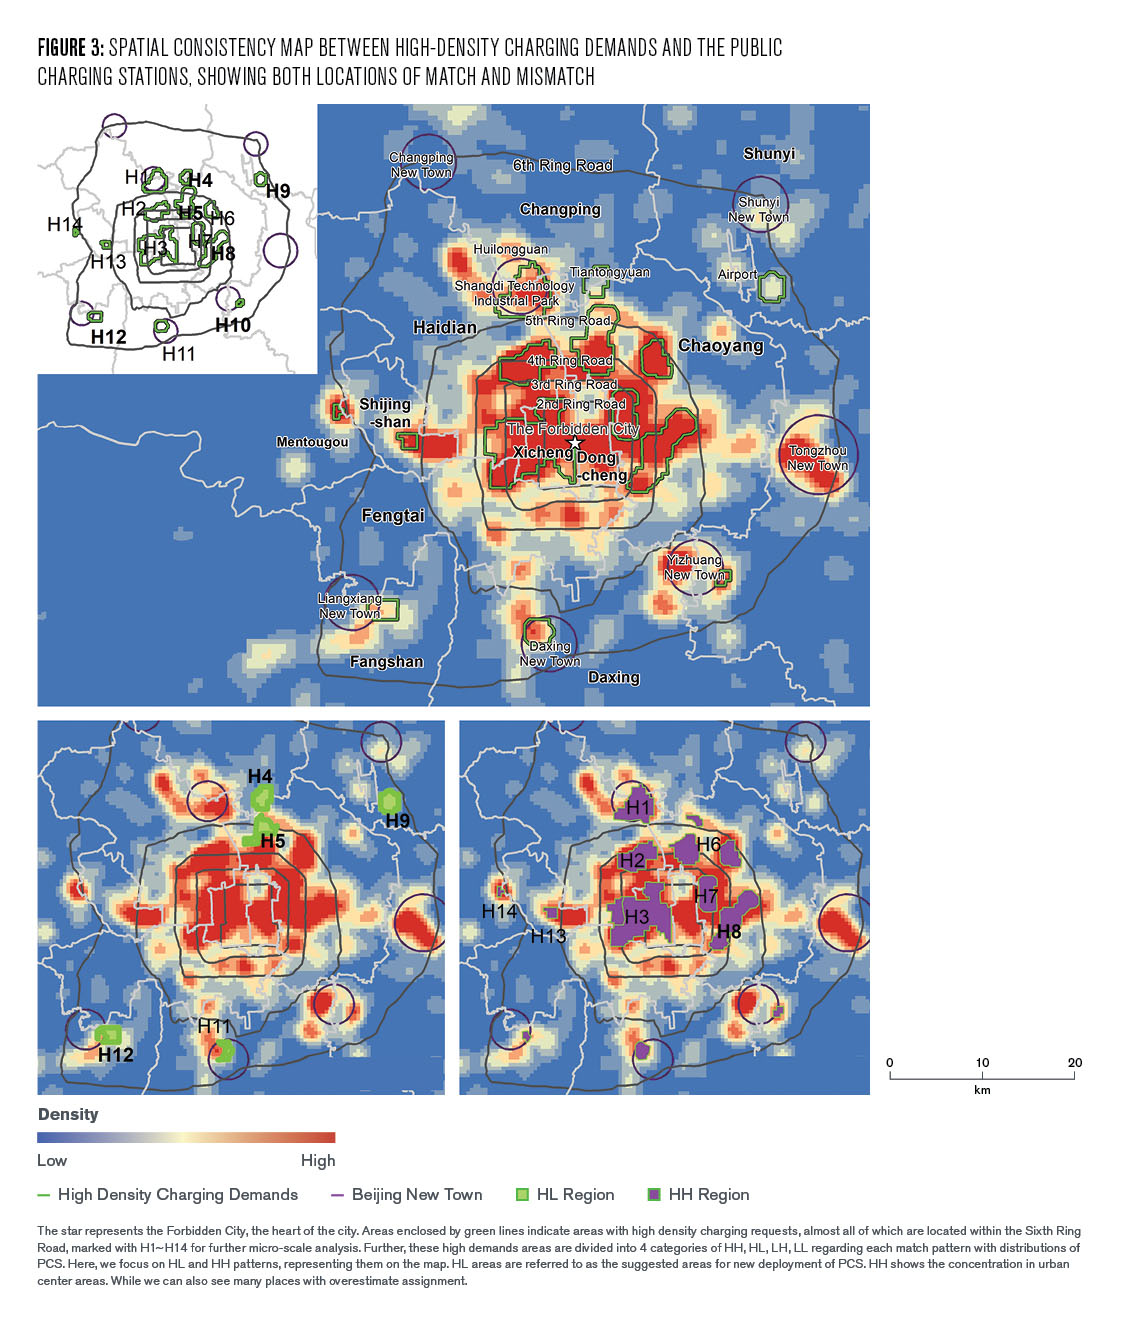 Figure 3: Spatial Consistency Map Between High-Density Changing Demands and the Public Charging Stations, Showing Both Locations of Match and Mismatch